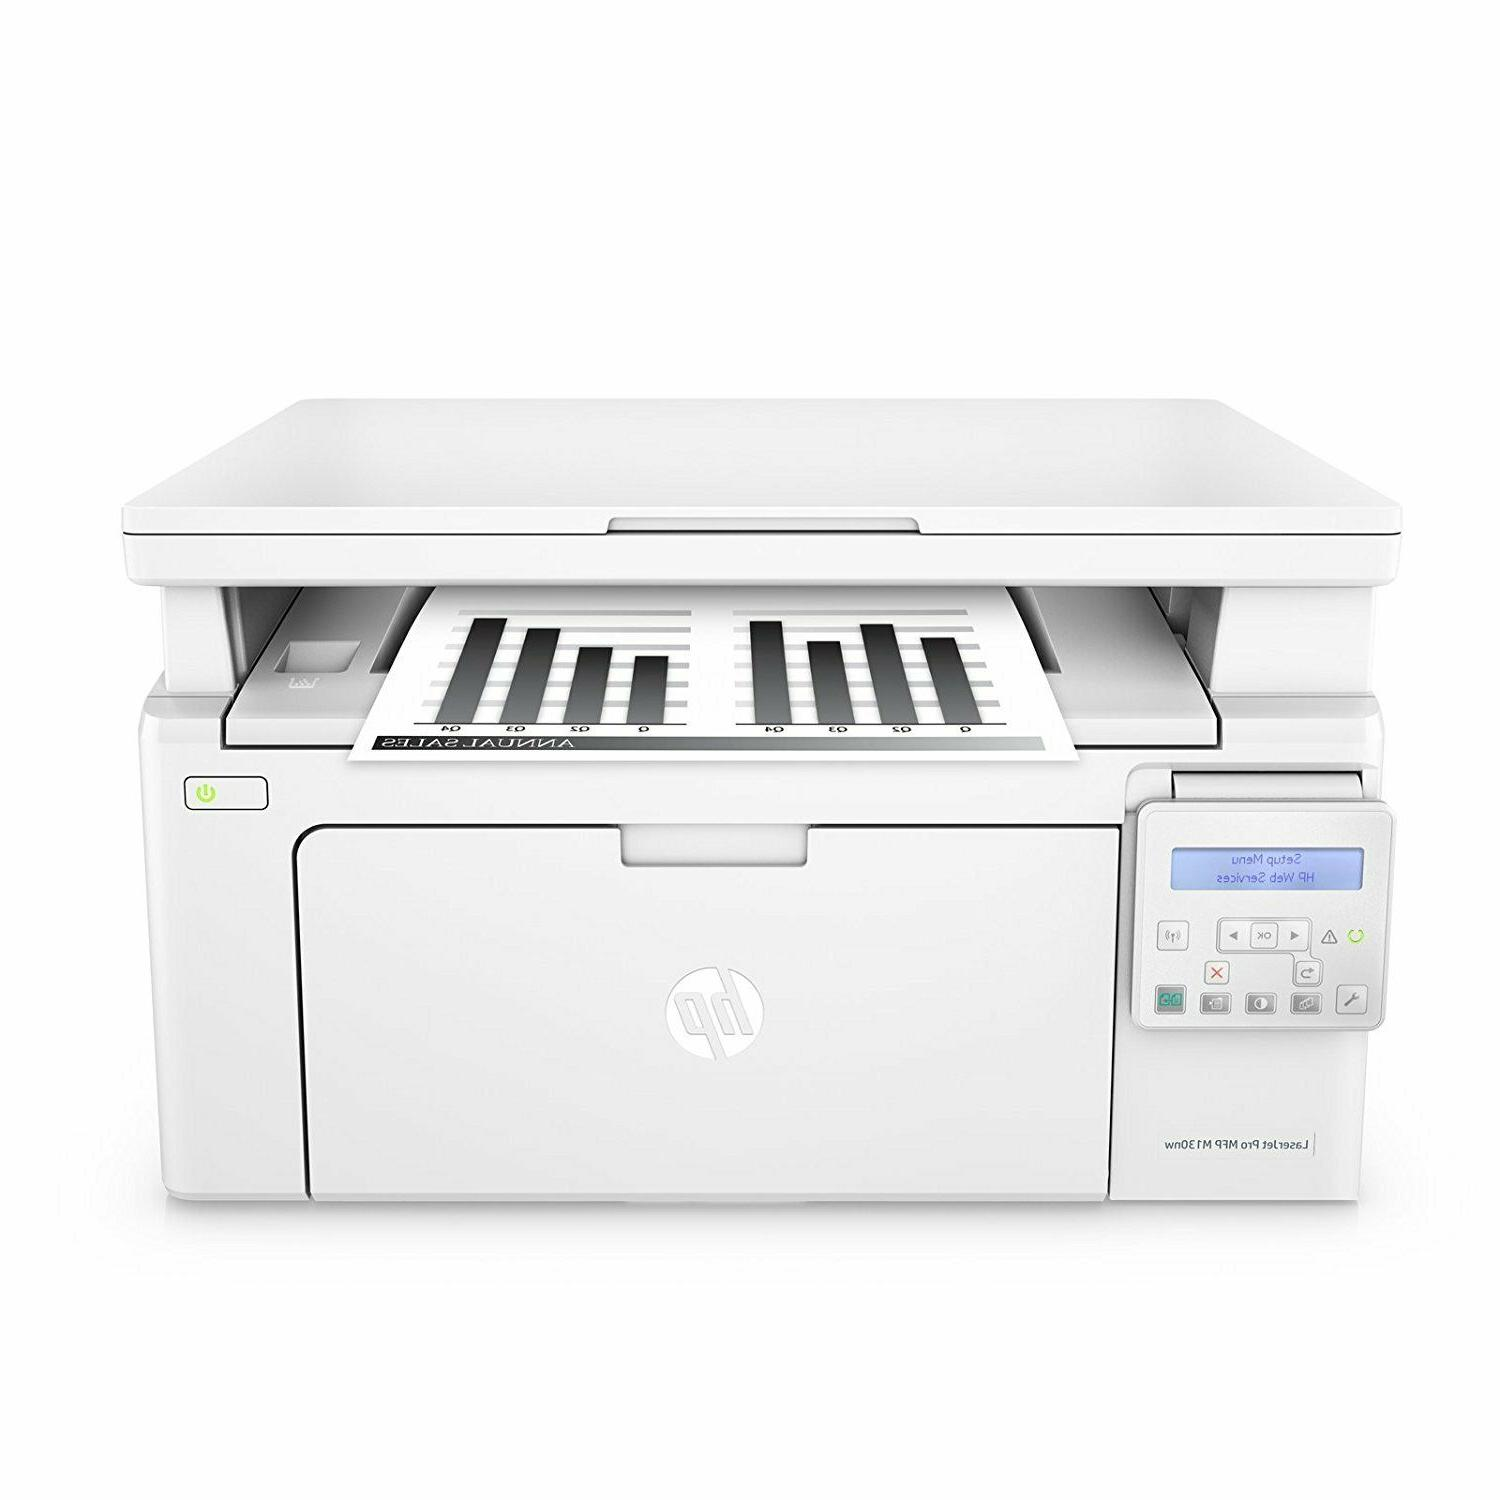 brand new laserjet pro m130nw all in